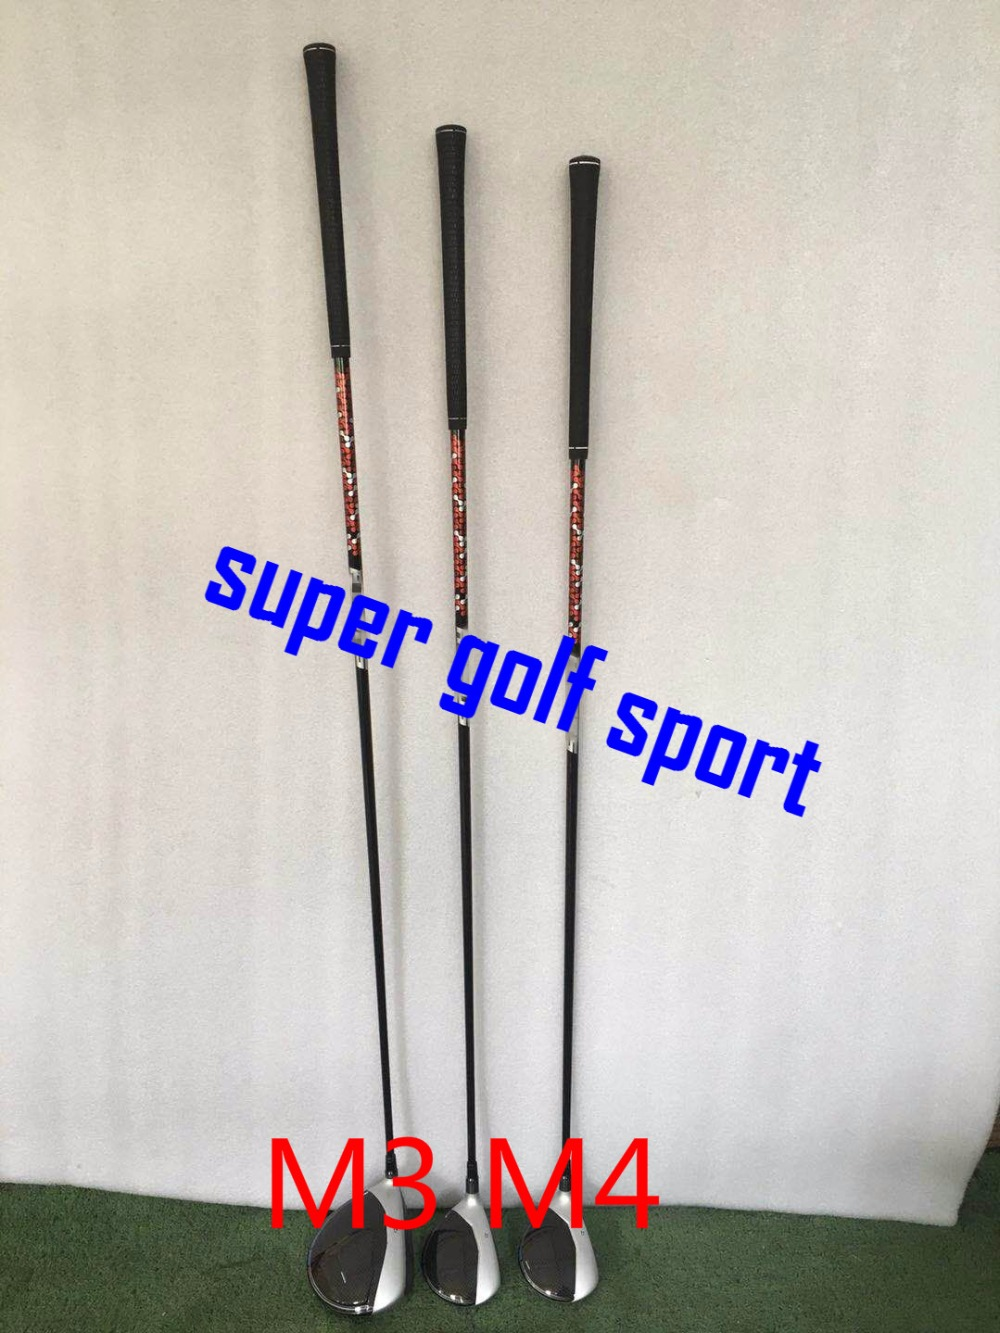 Hot sell mens Golf clubs driver M4 Golf driver 9 5 or 10 5 loft Graphite